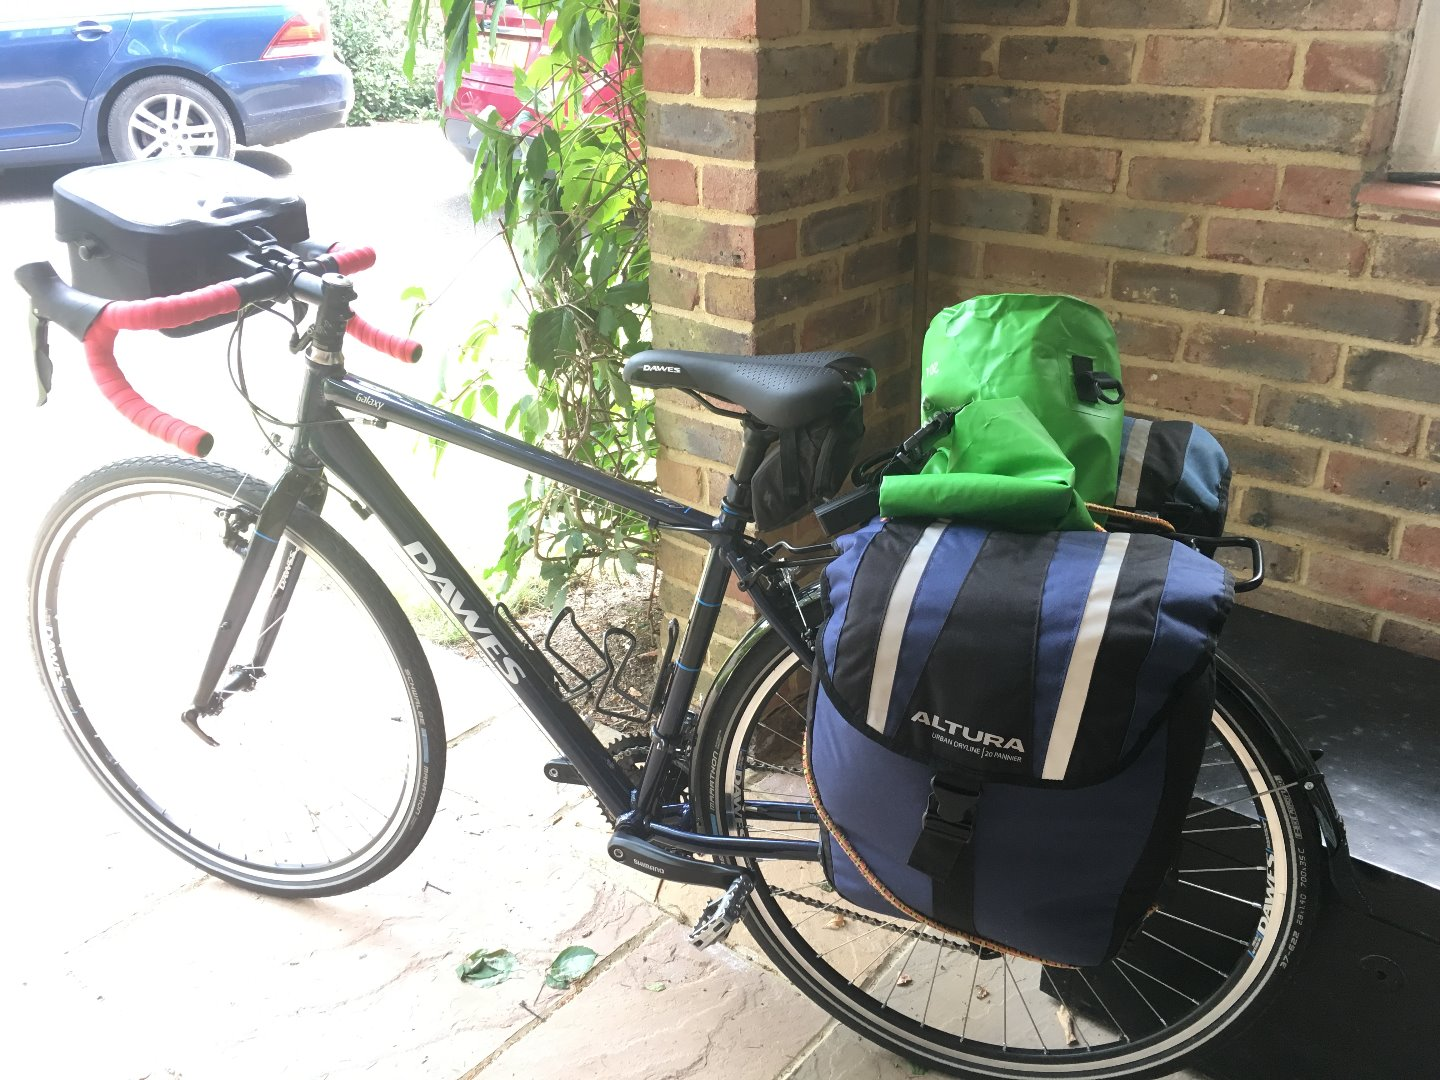 Stolen Dawes Cycles Galaxy Touring Bike 18